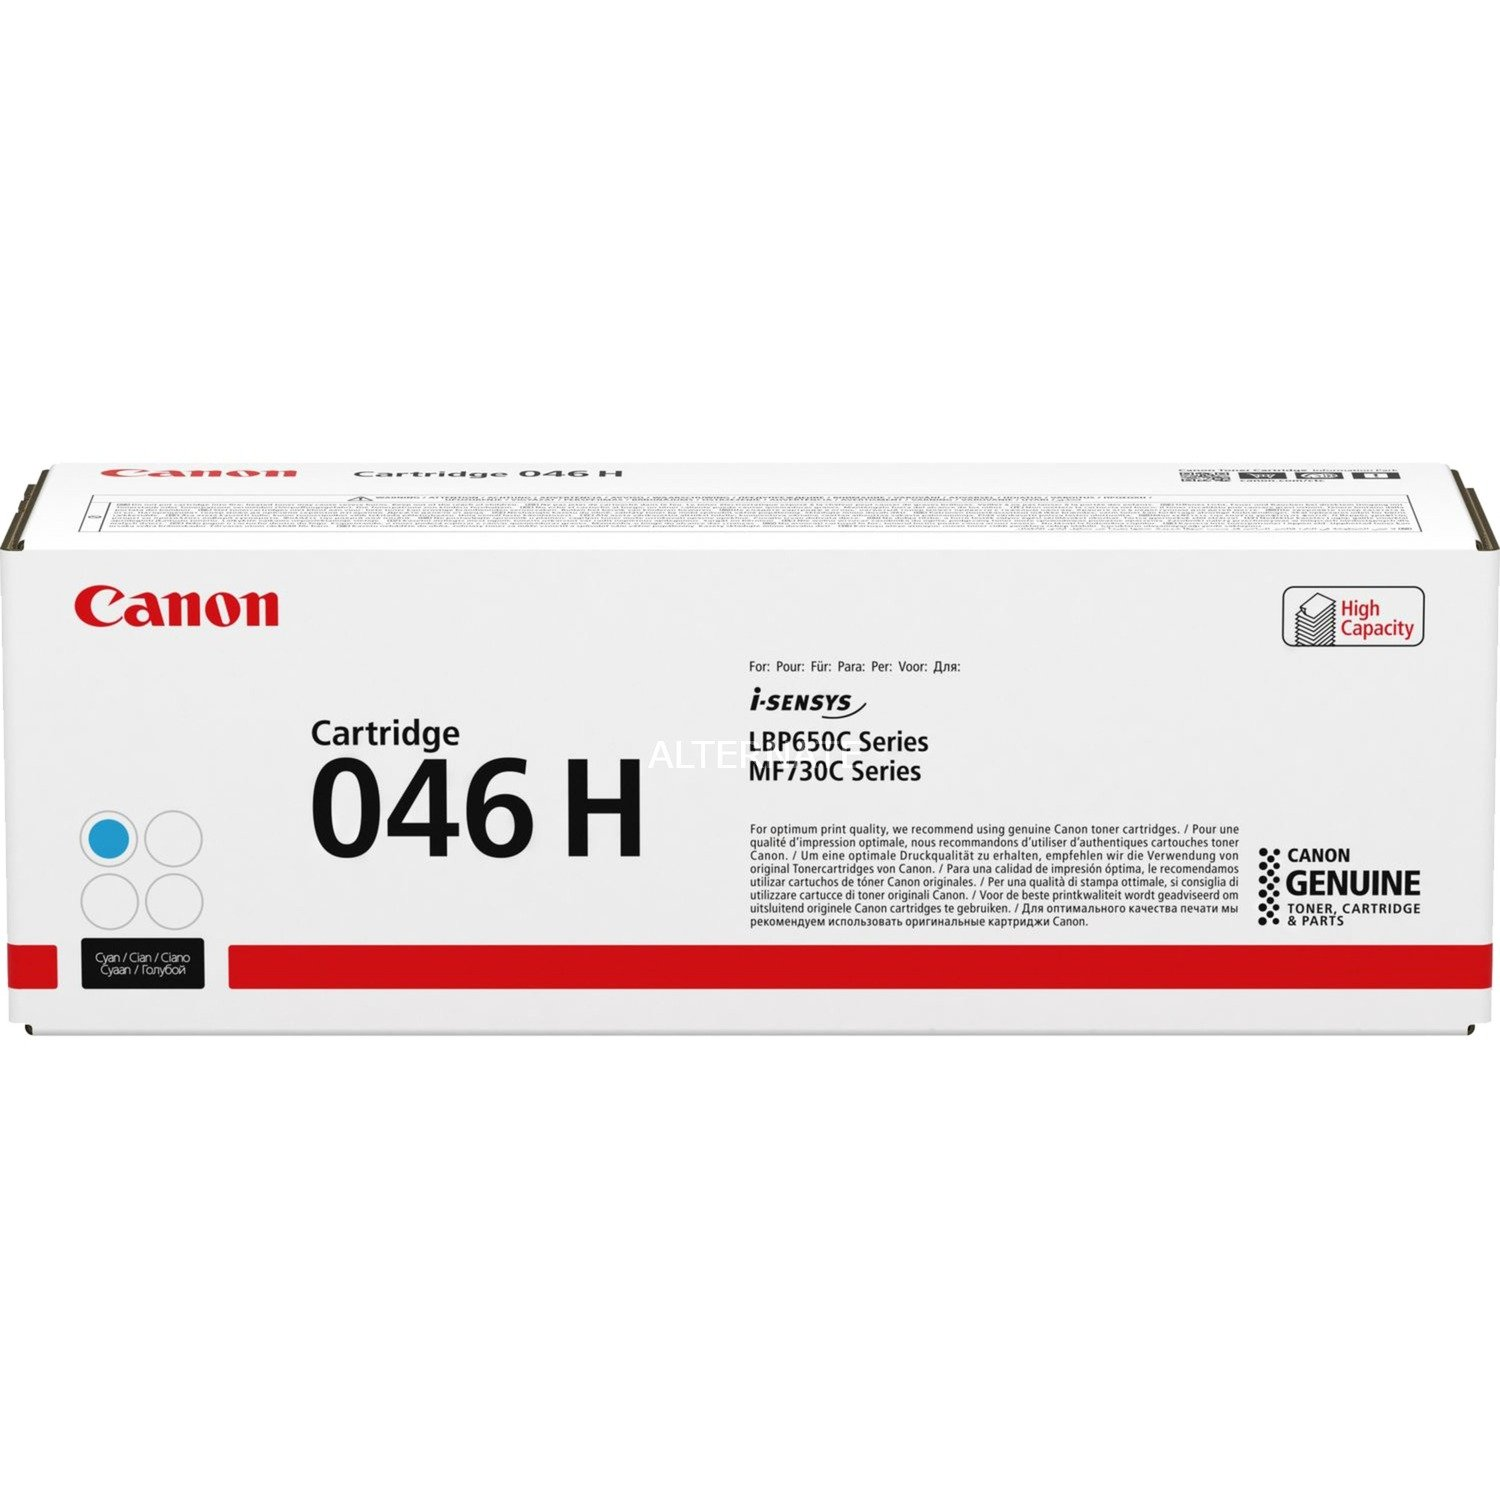 046 H Cartouche laser 5000pages Cyan, Toner